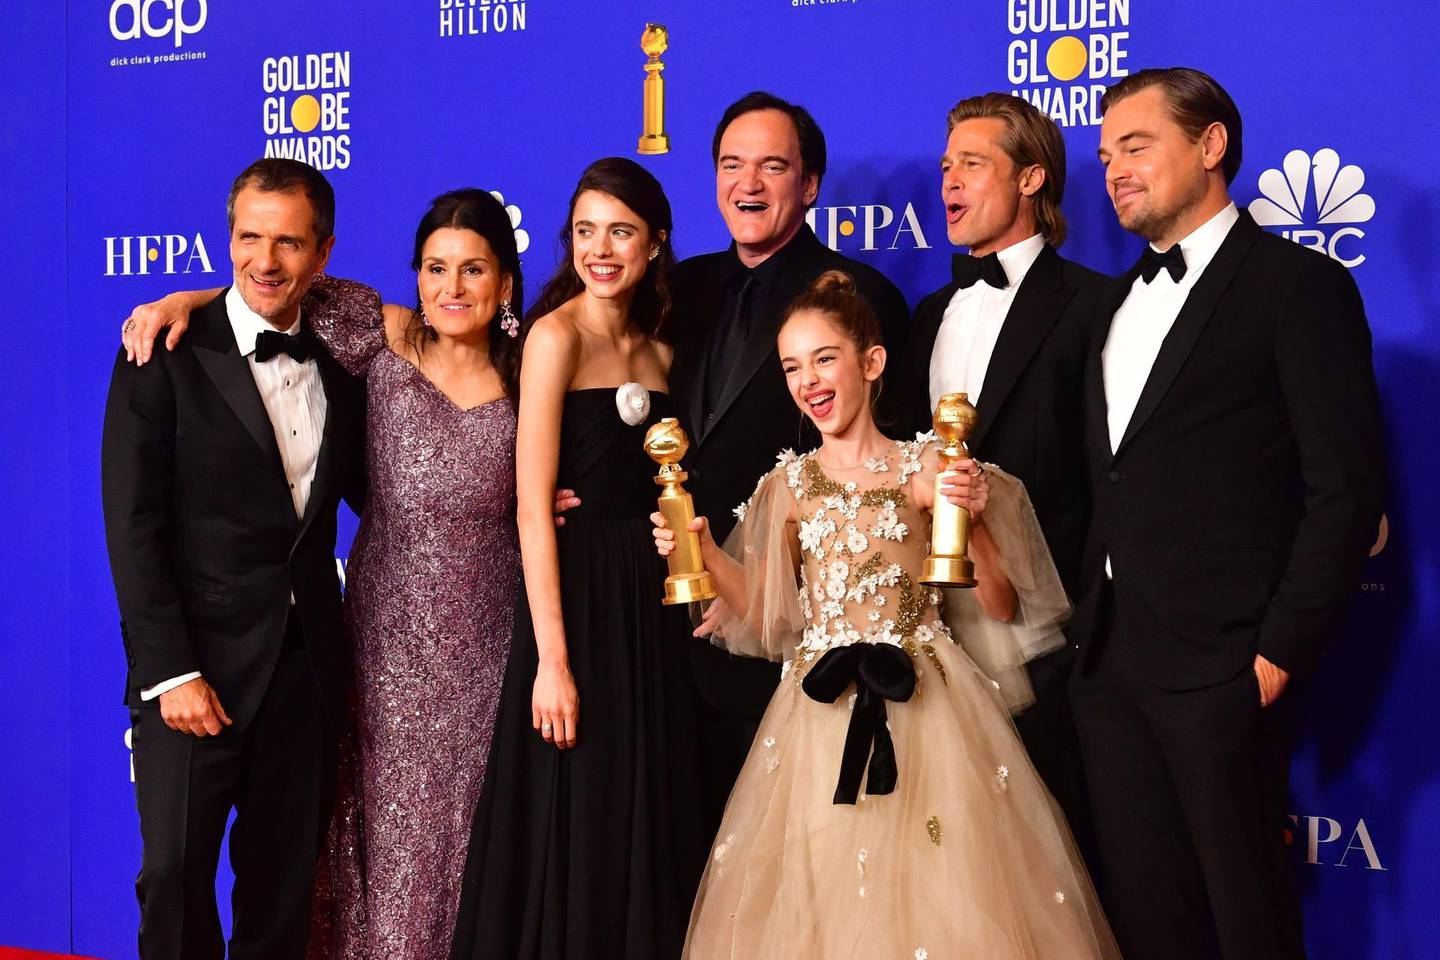 """US film director Quentin Tarantino (C), actors US actor Brad Pitt and Leonardo DiCaprio pose with other members of the cast and crew in the press room after winning the award for Best Motion Picture - Musical or Comedy for """"Once Upon a Time...in Hollywood"""" during the 77th annual Golden Globe Awards on January 5, 2020, at The Beverly Hilton hotel in Beverly Hills, California. / AFP / Frederic J. Brown"""